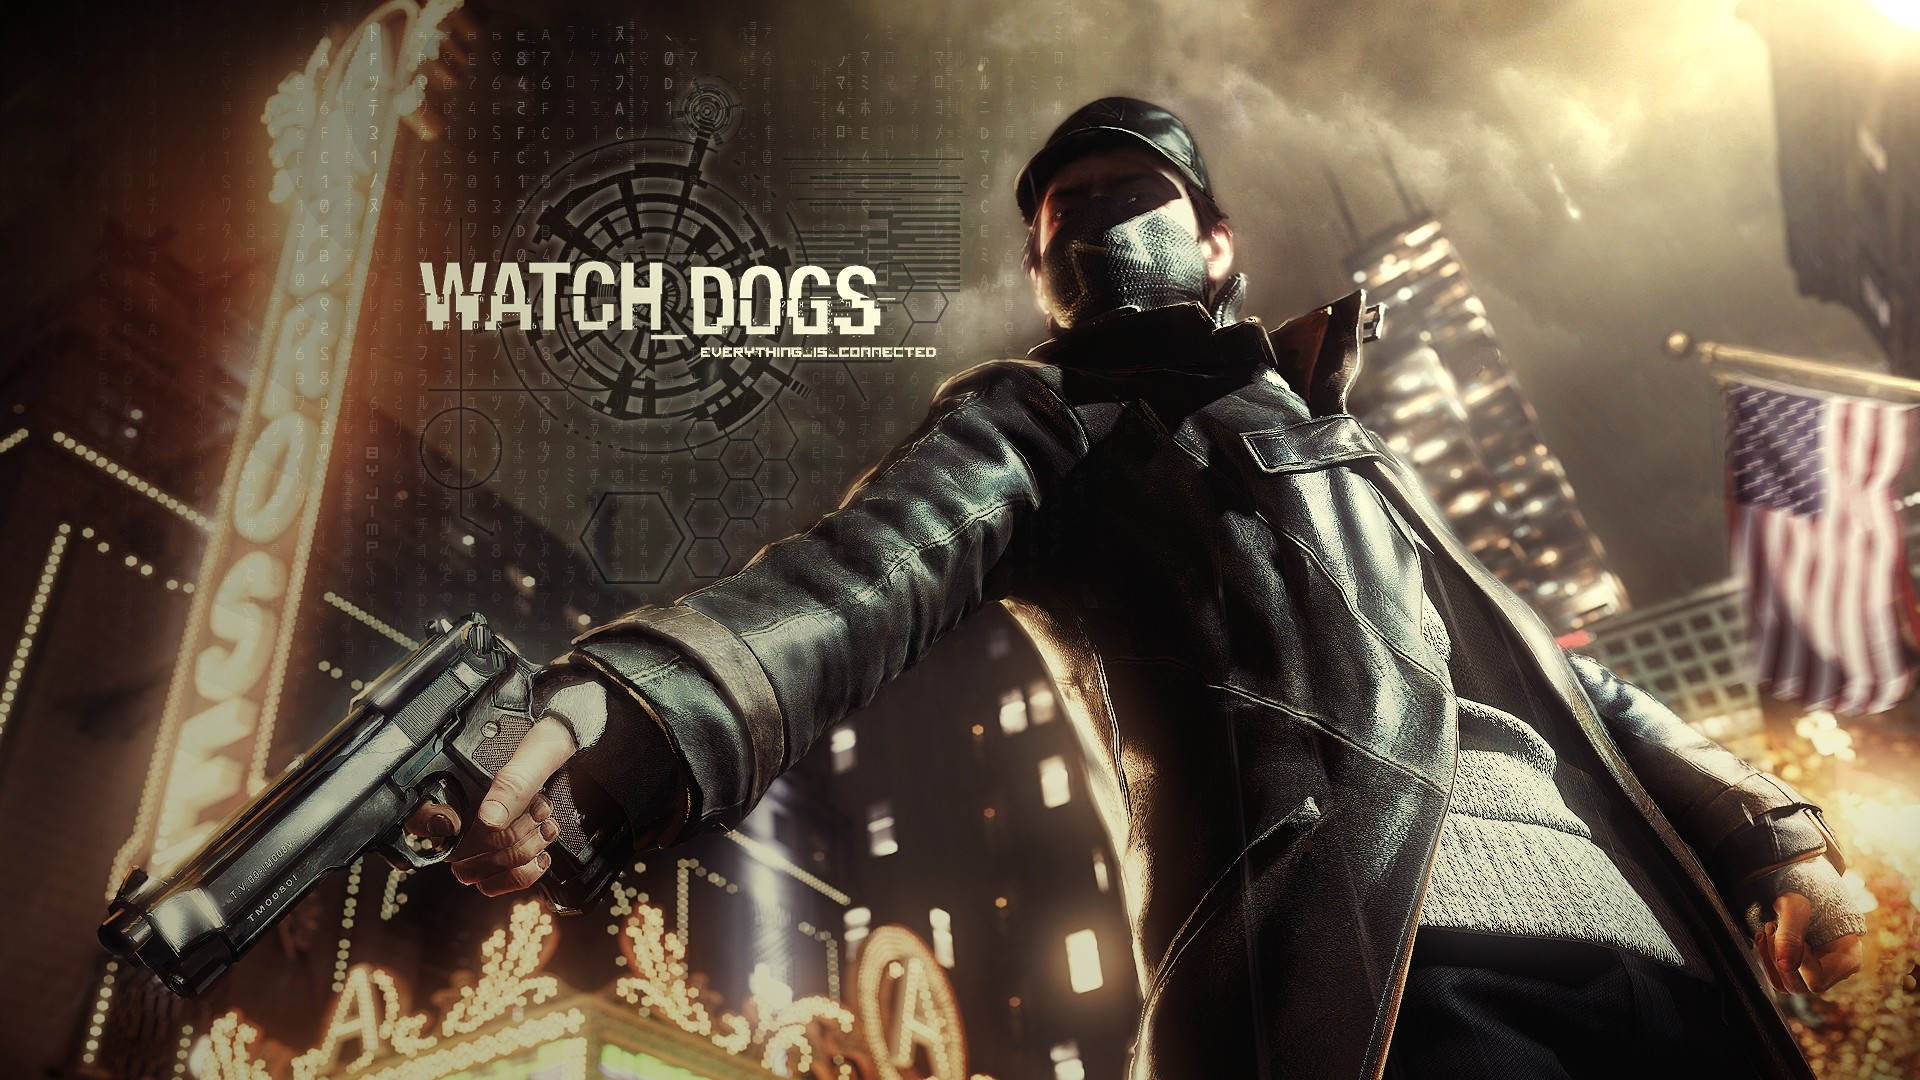 New Watch Dogs Game Cover Aiden Pearce Wallpaper HD for Desktop